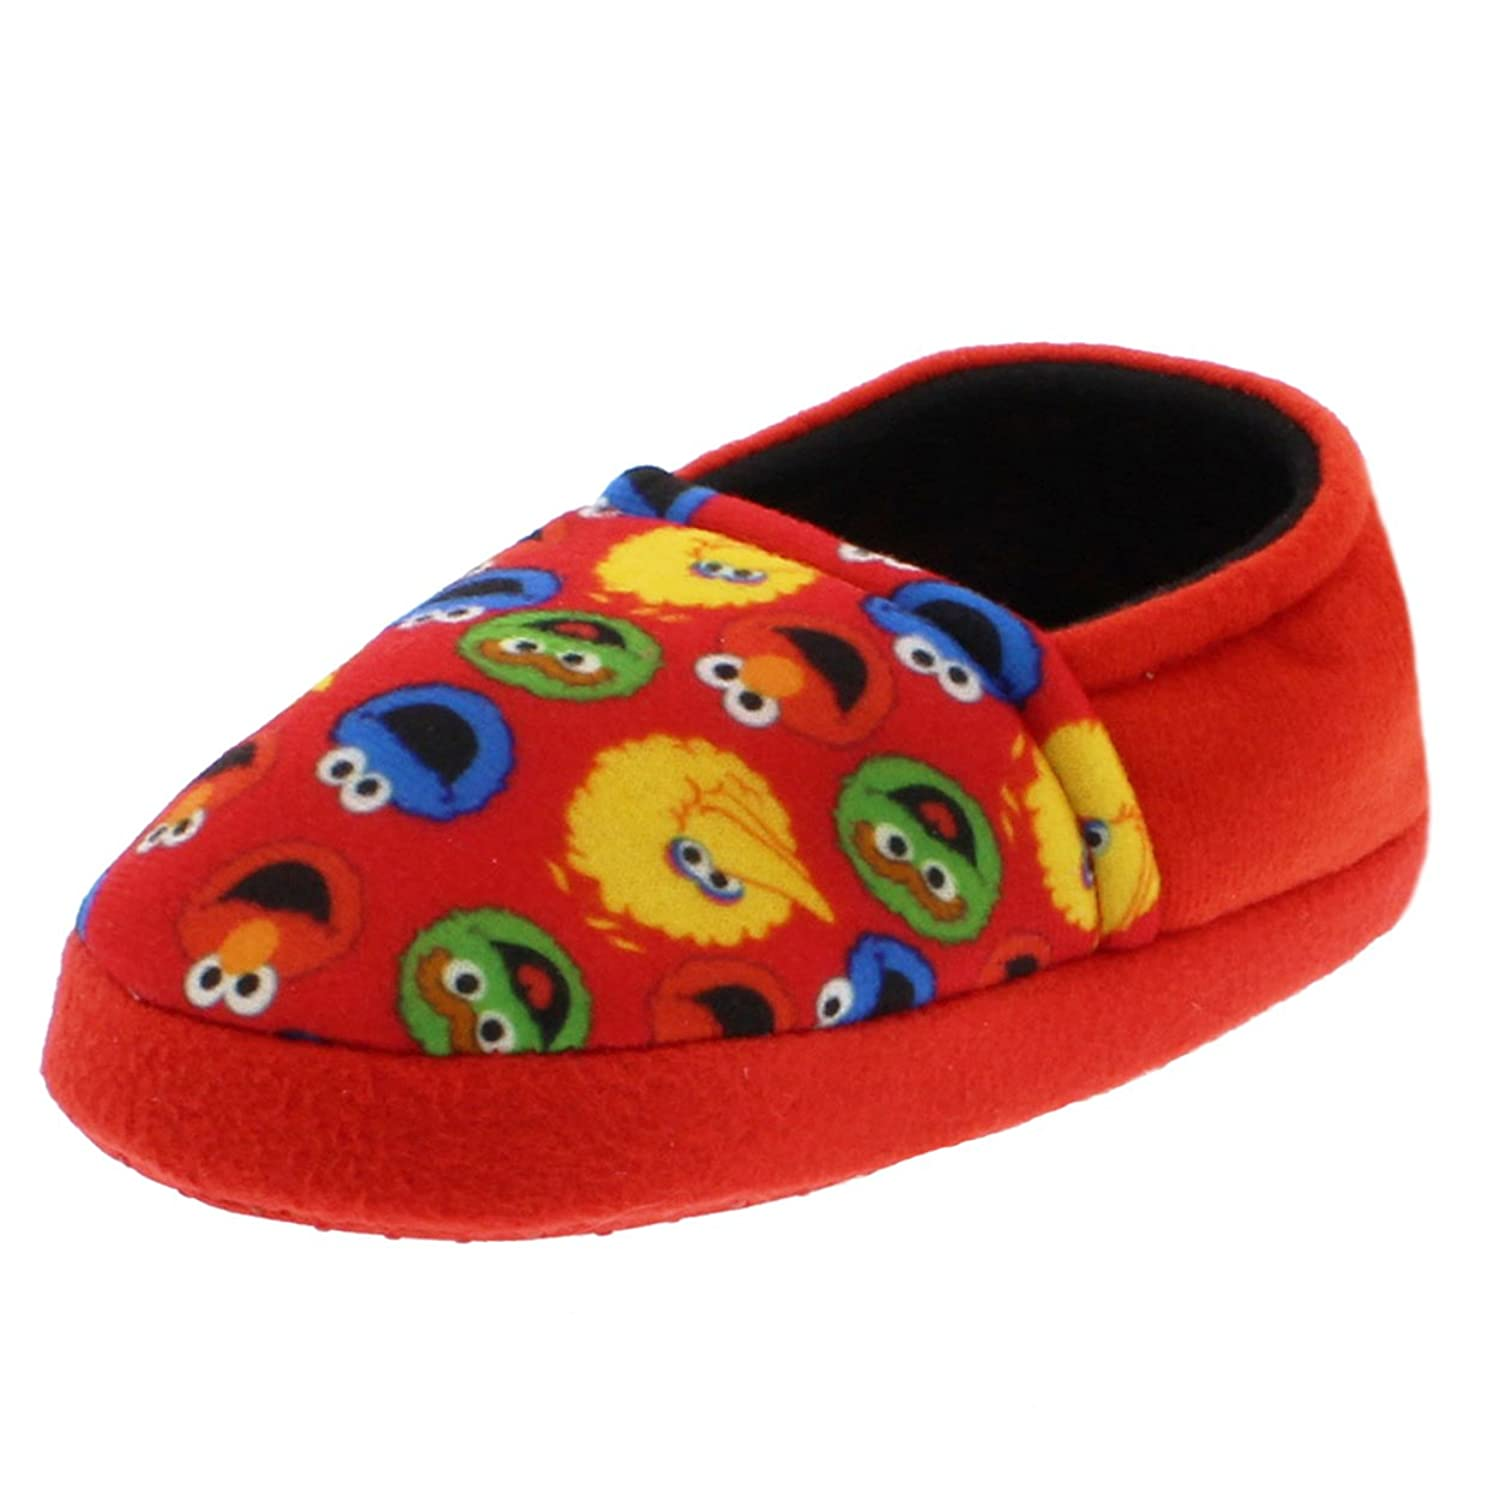 Sesame Street Elmo Cookie Monster Boys Girls Aline Slippers (Toddler/Little Kid)